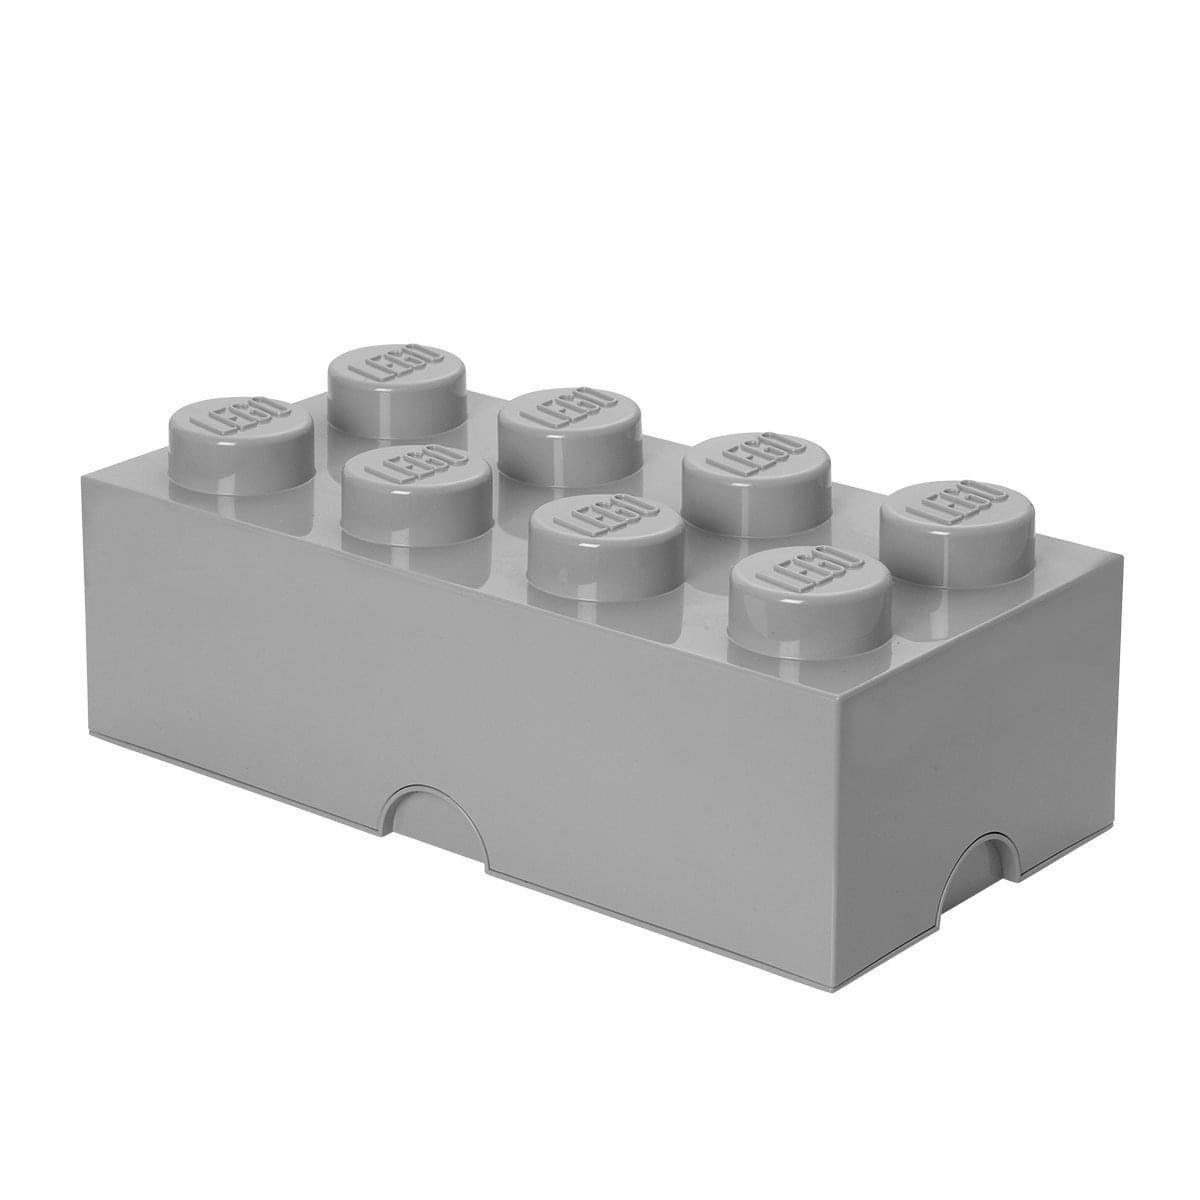 LEGO Storage Brick 8, Stone Grey